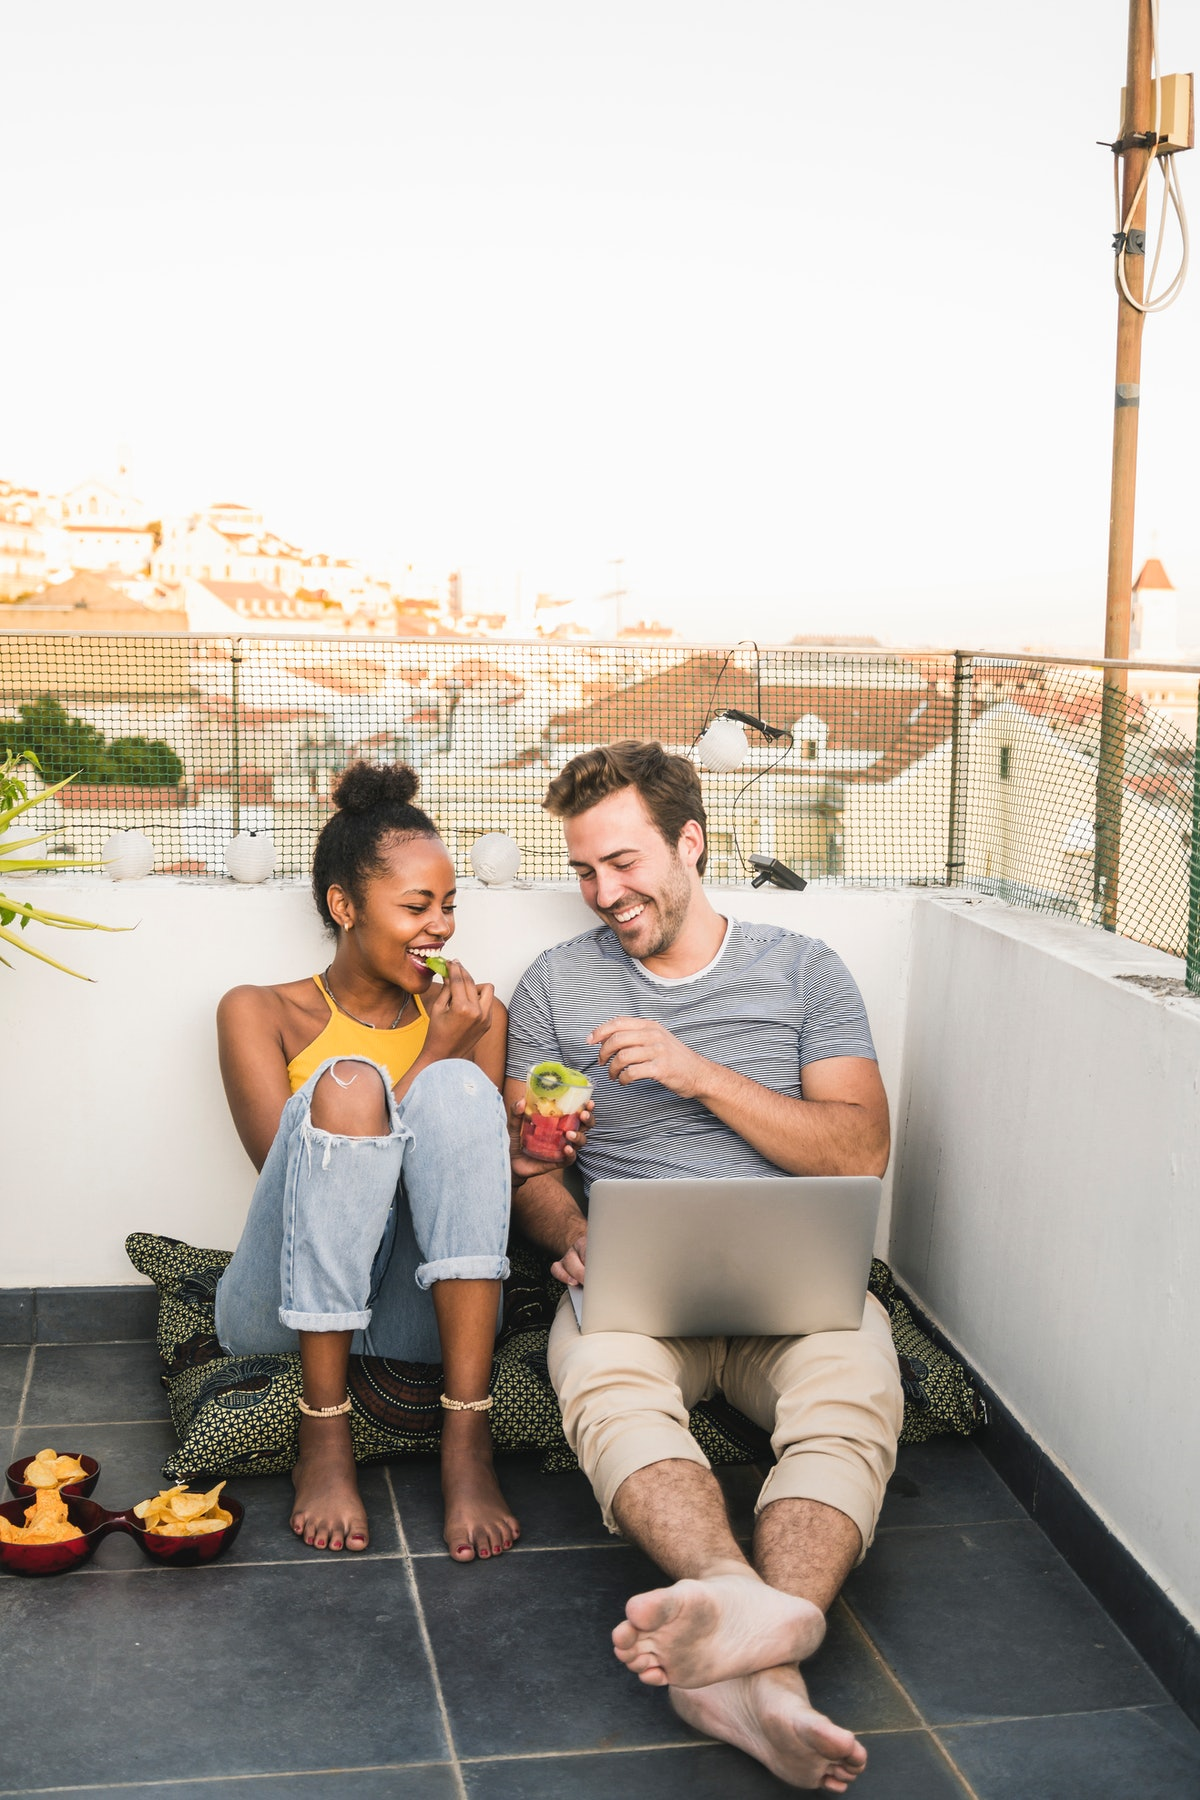 A young couple enjoys snacks and drinks on their rooftop while video chatting.